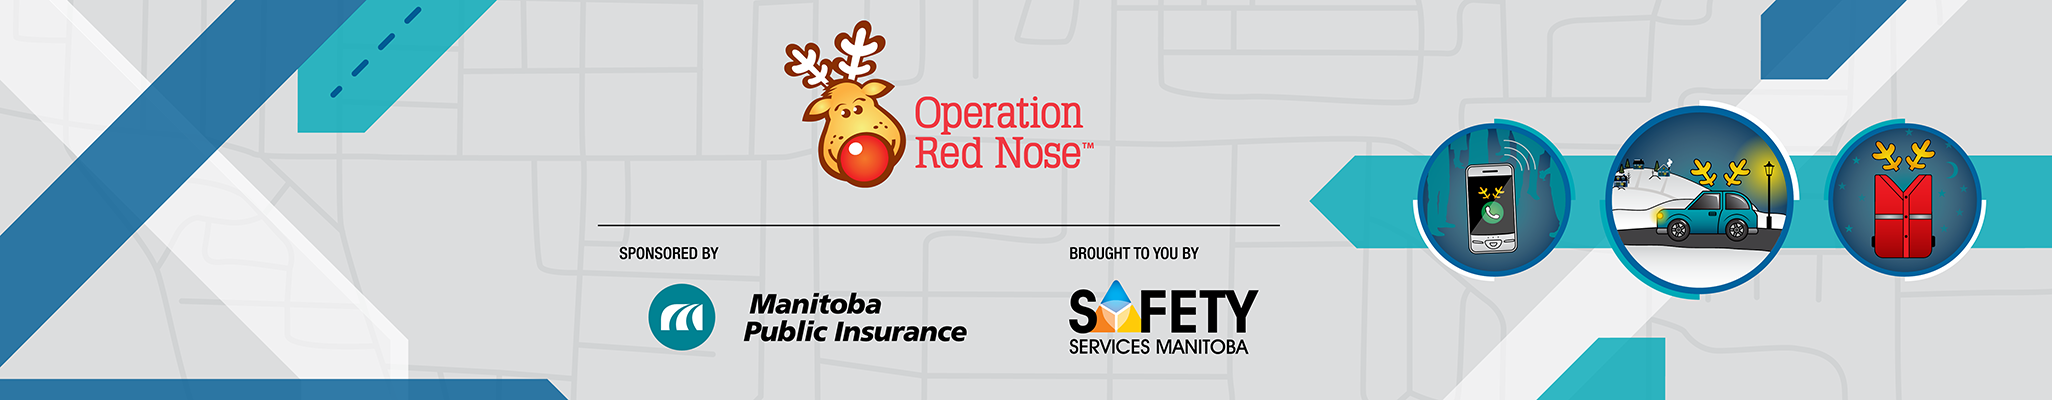 Operation Red Nose Cover Banner